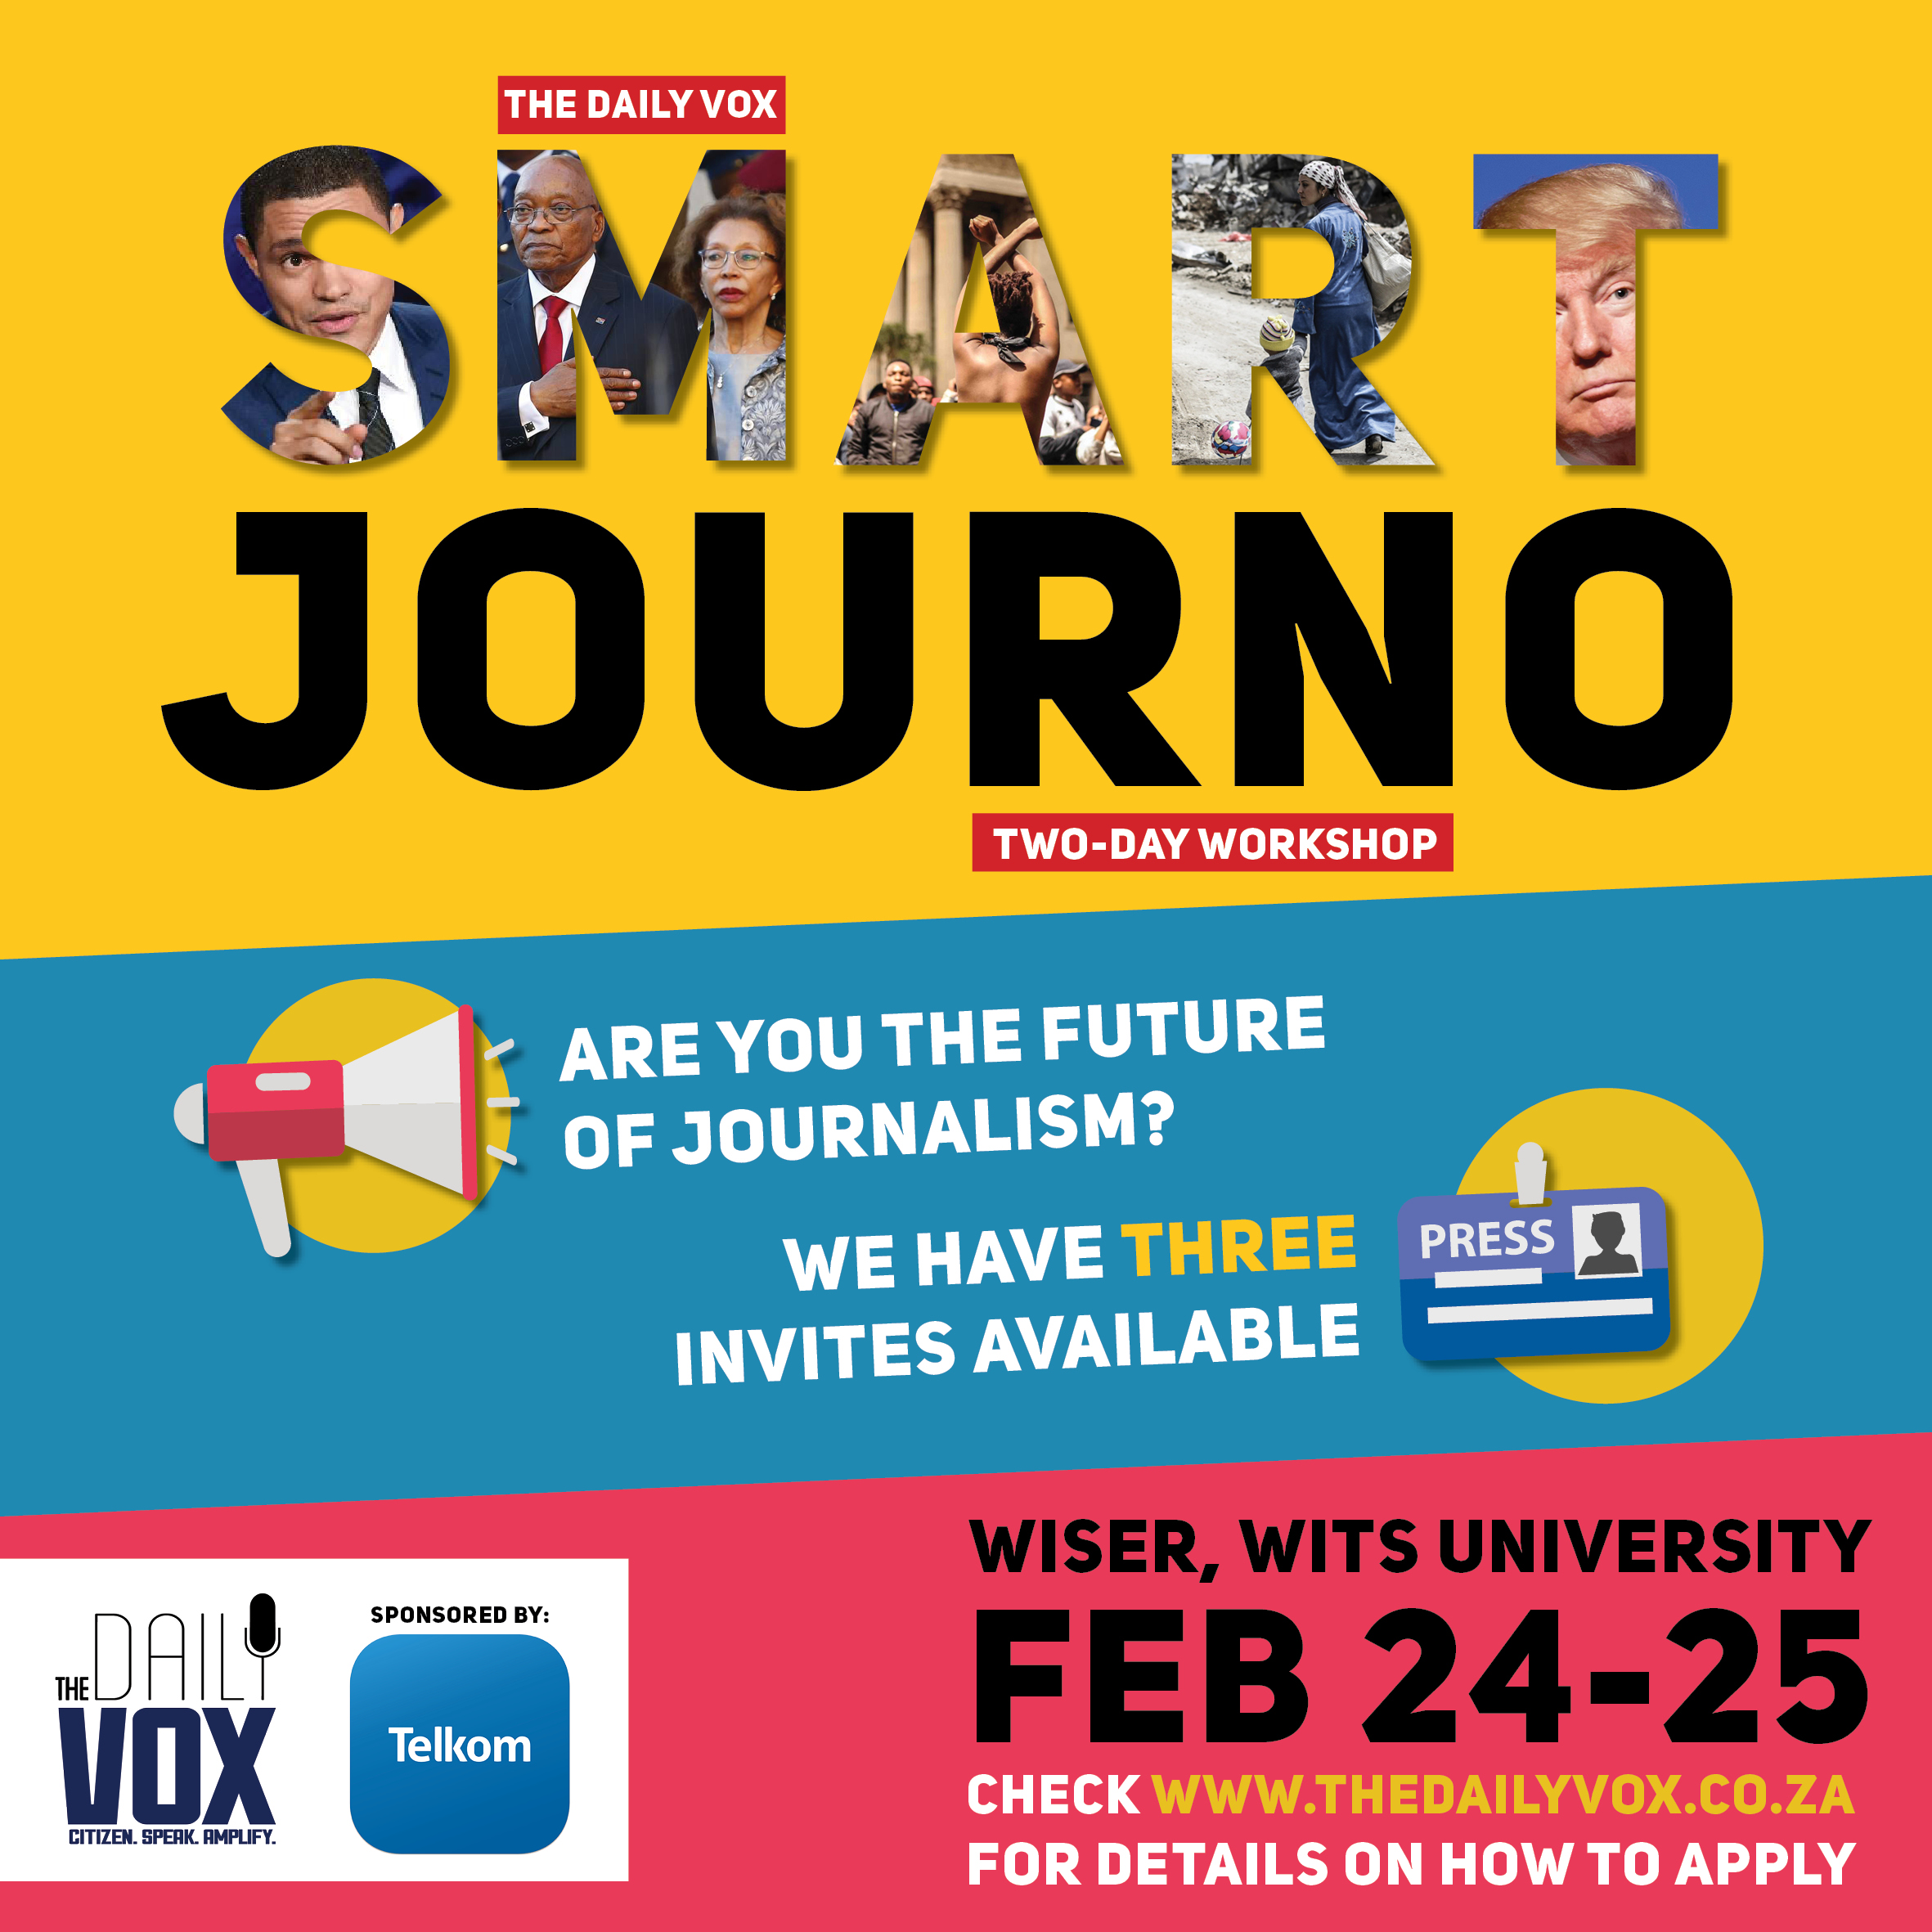 Win an invitation to our Smart Journalism Workshop